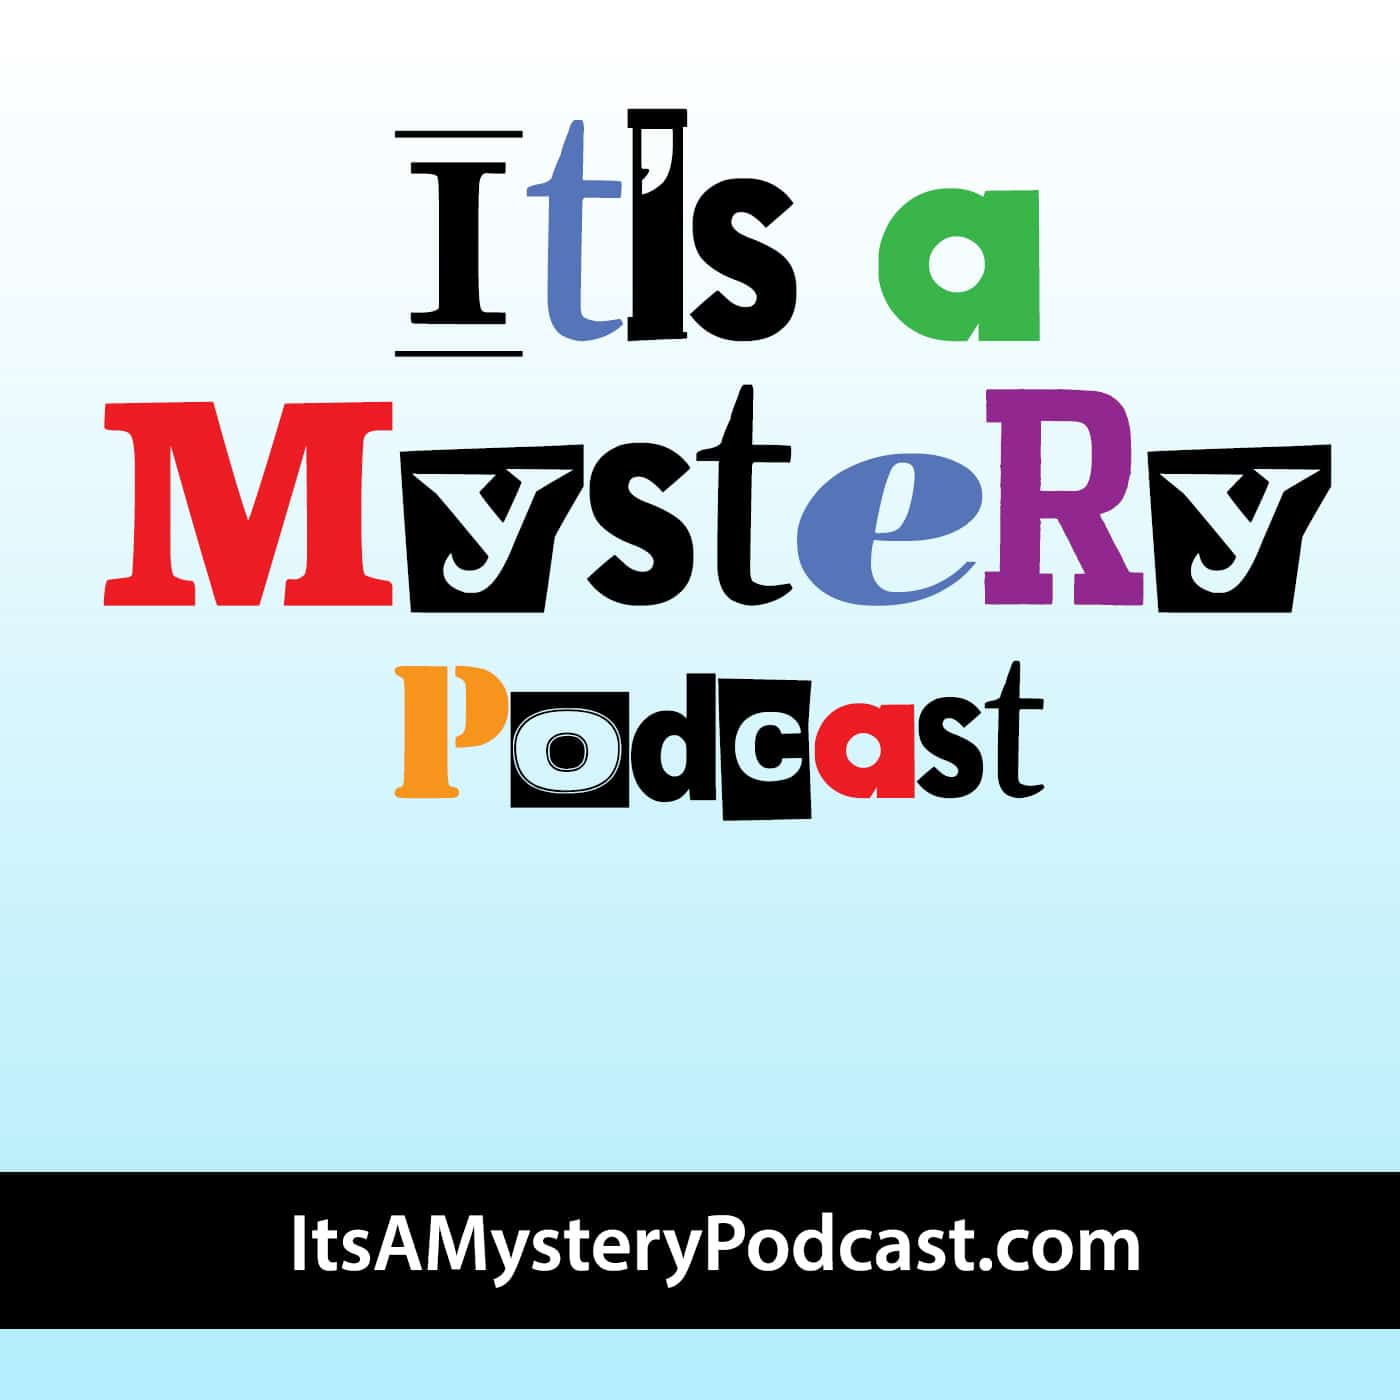 I'm interviewed for the IT'S A MYSTERY PODCAST about the Miso Cozy Mysteries and Mei, my love of Japan, and much more!